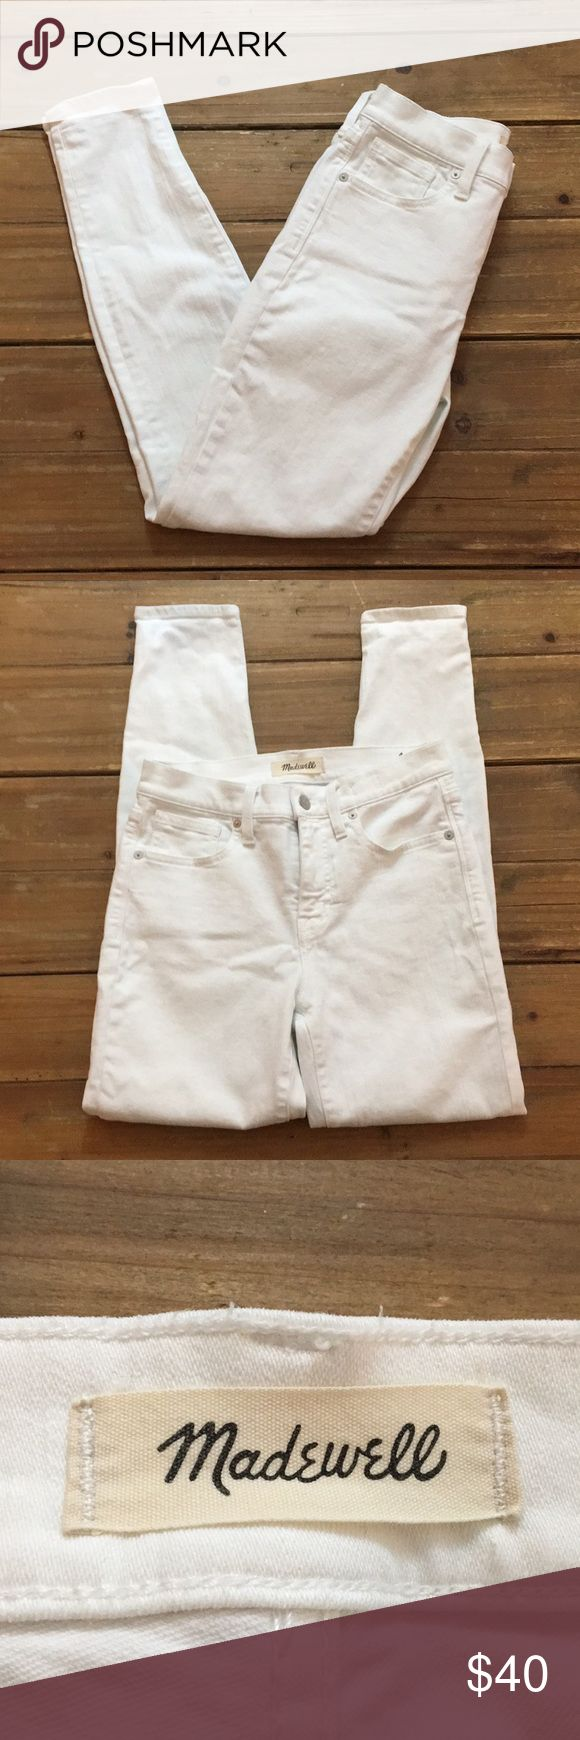 Madewell White High Rise Skinny Jeans Madewell White High Rise Skinny Jeans, Size 26,  gently pre-owned.  Measurements:  Waist- 13.5 inches across Inseam- 27.5 inches Rise- 9.5 inches  Leg Opening- 5 inches across Madewell Jeans Skinny